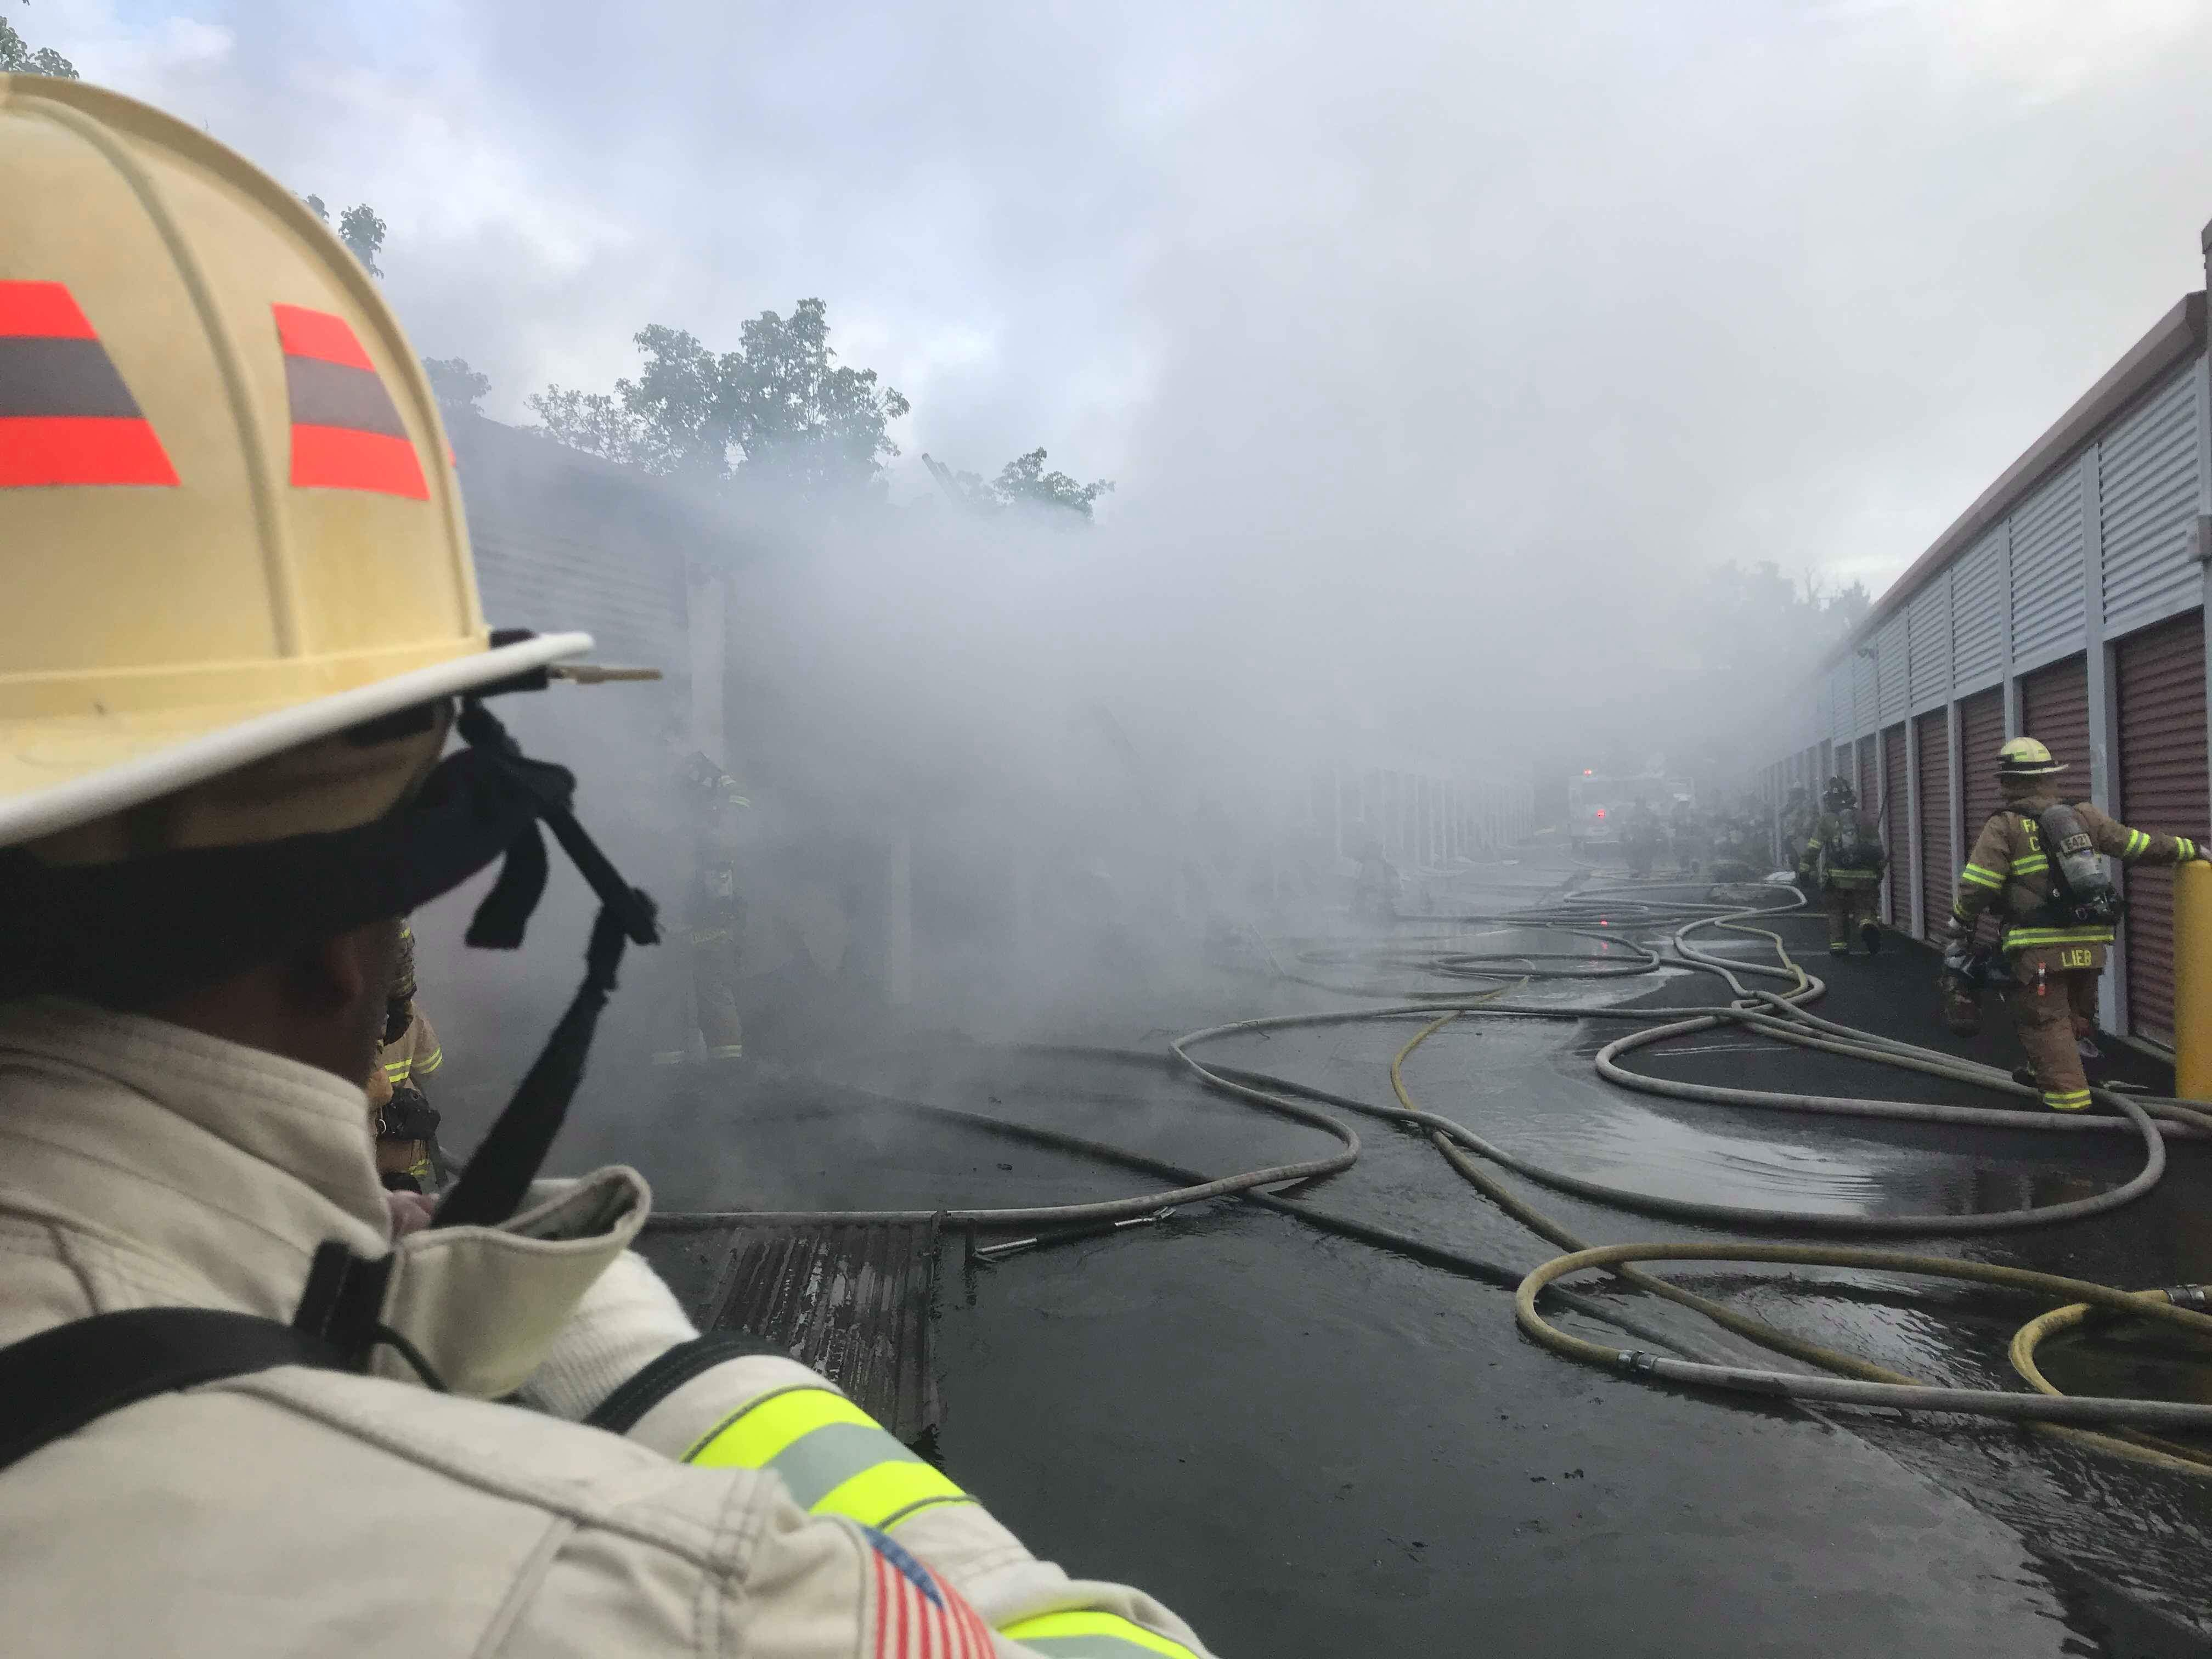 May 2018 – Fairfax County Fire and Rescue Department